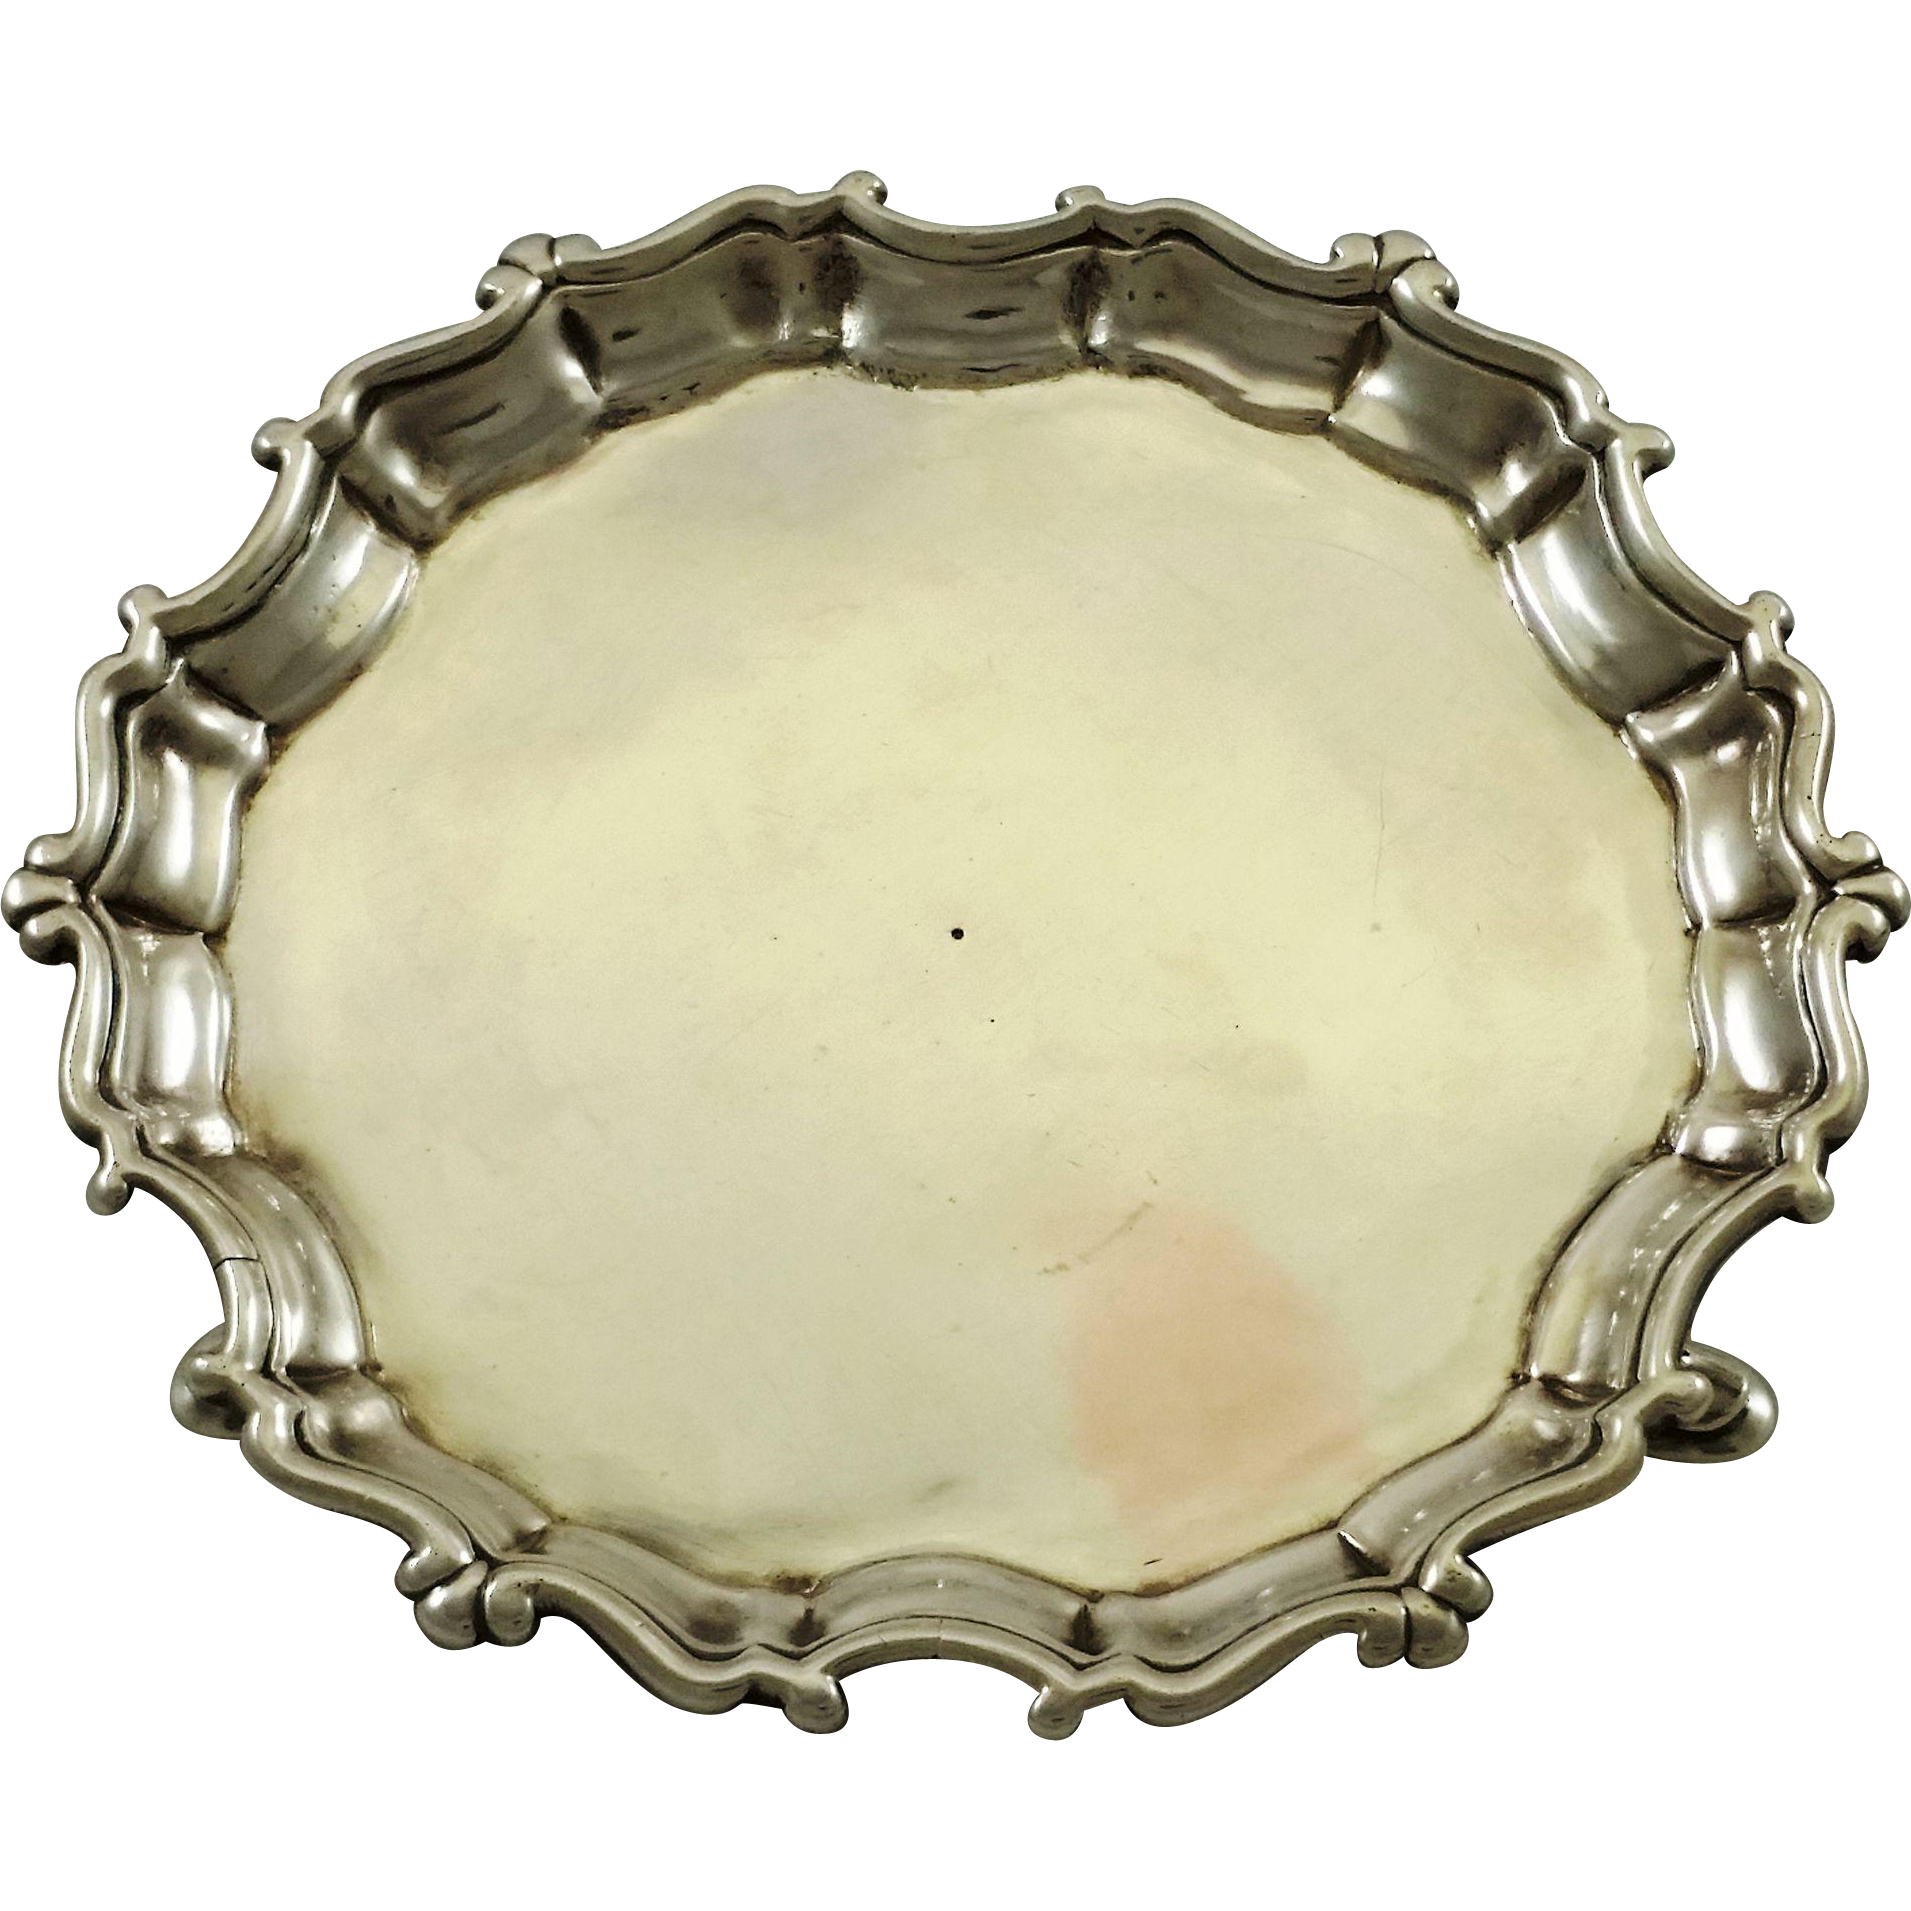 Rare Irish sterling silver salver by B. Mosse c. 1750